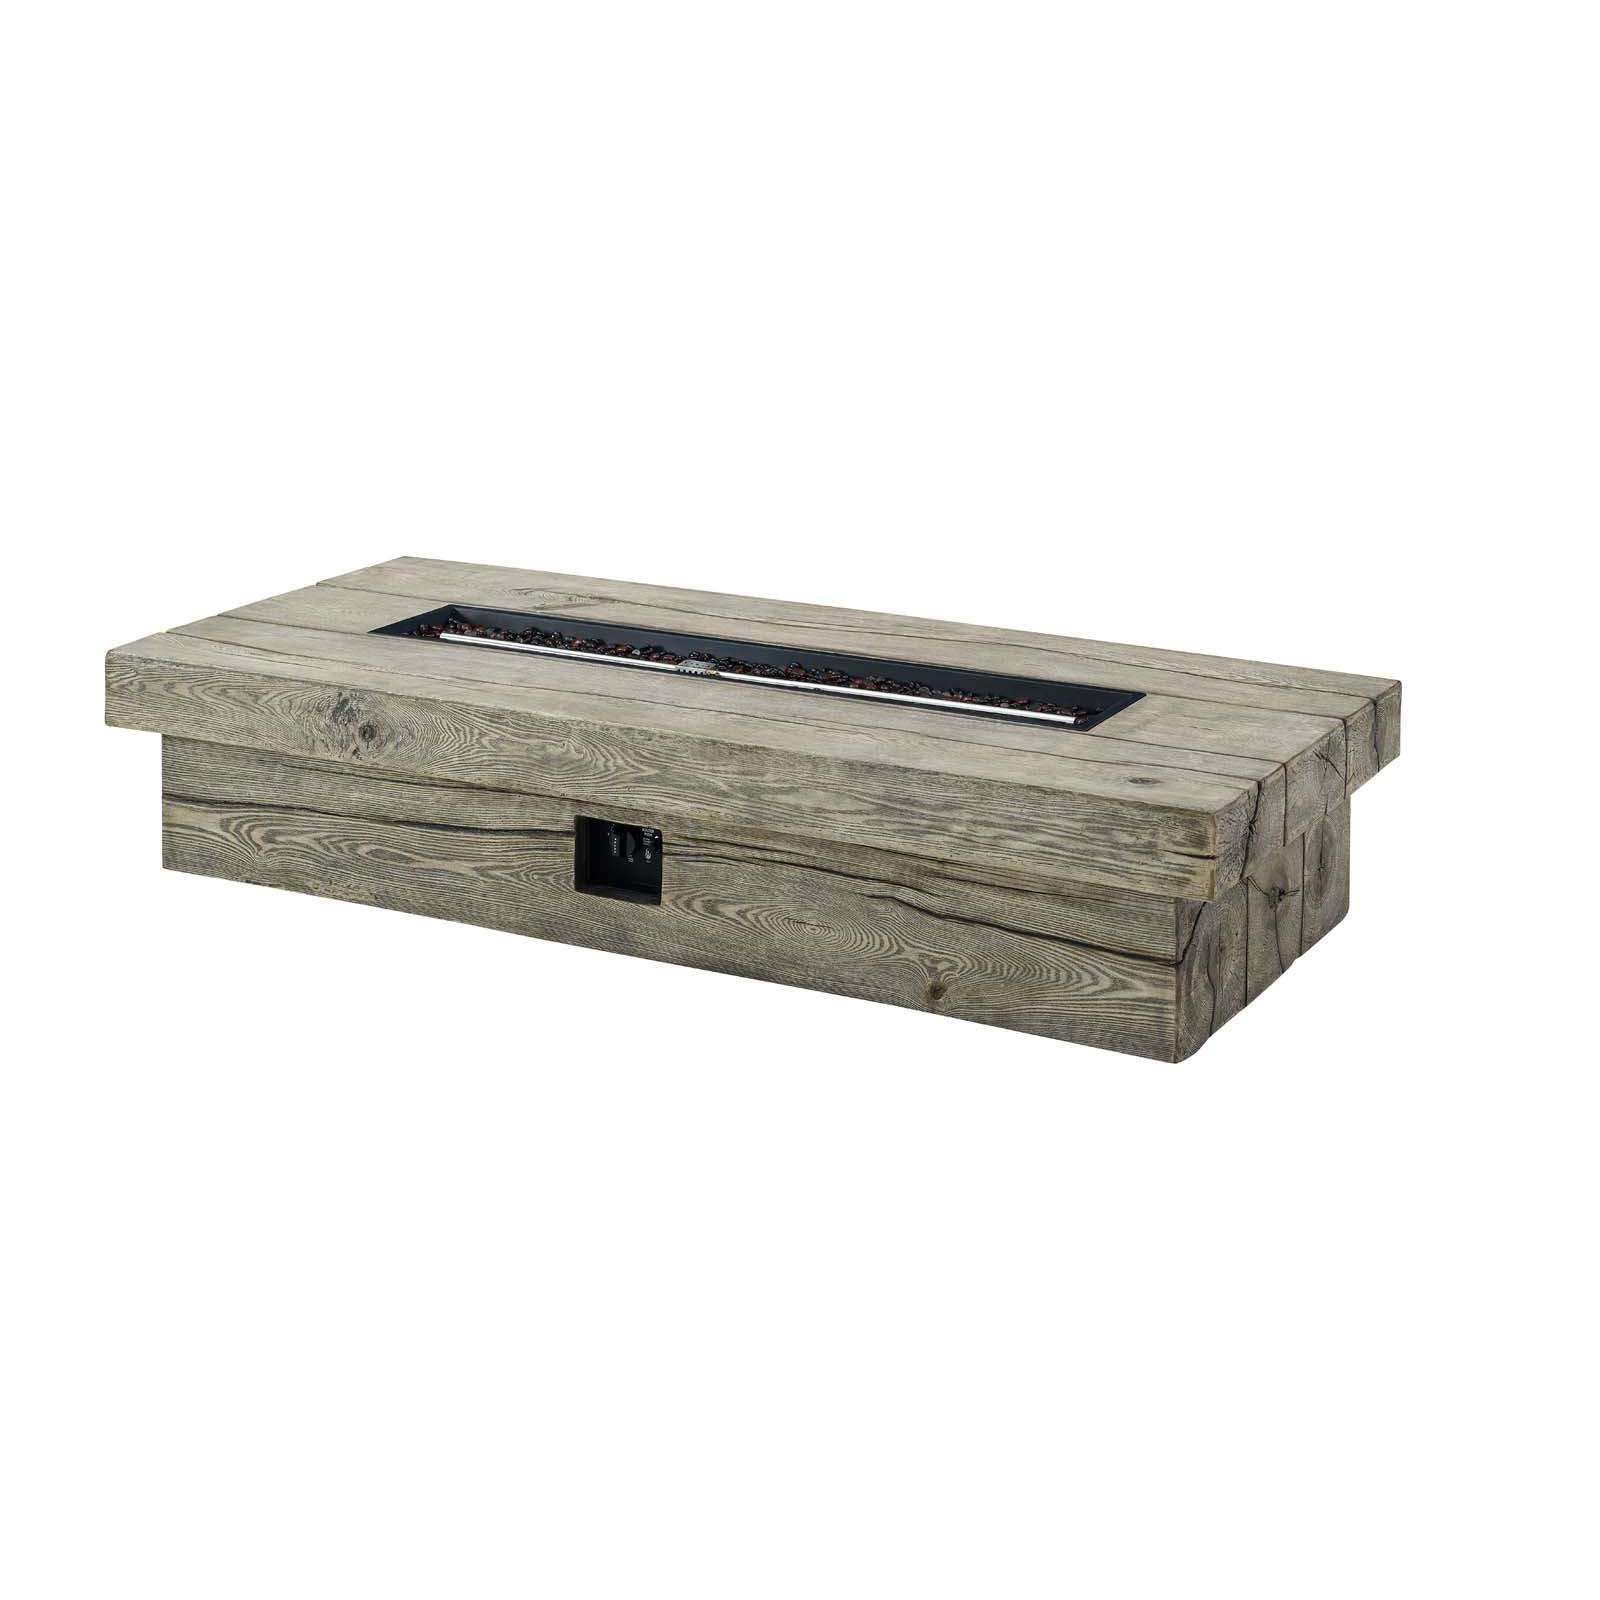 Manteo 70 Inch Rectangular Outdoor Patio Fire Pit Table in Light Gray